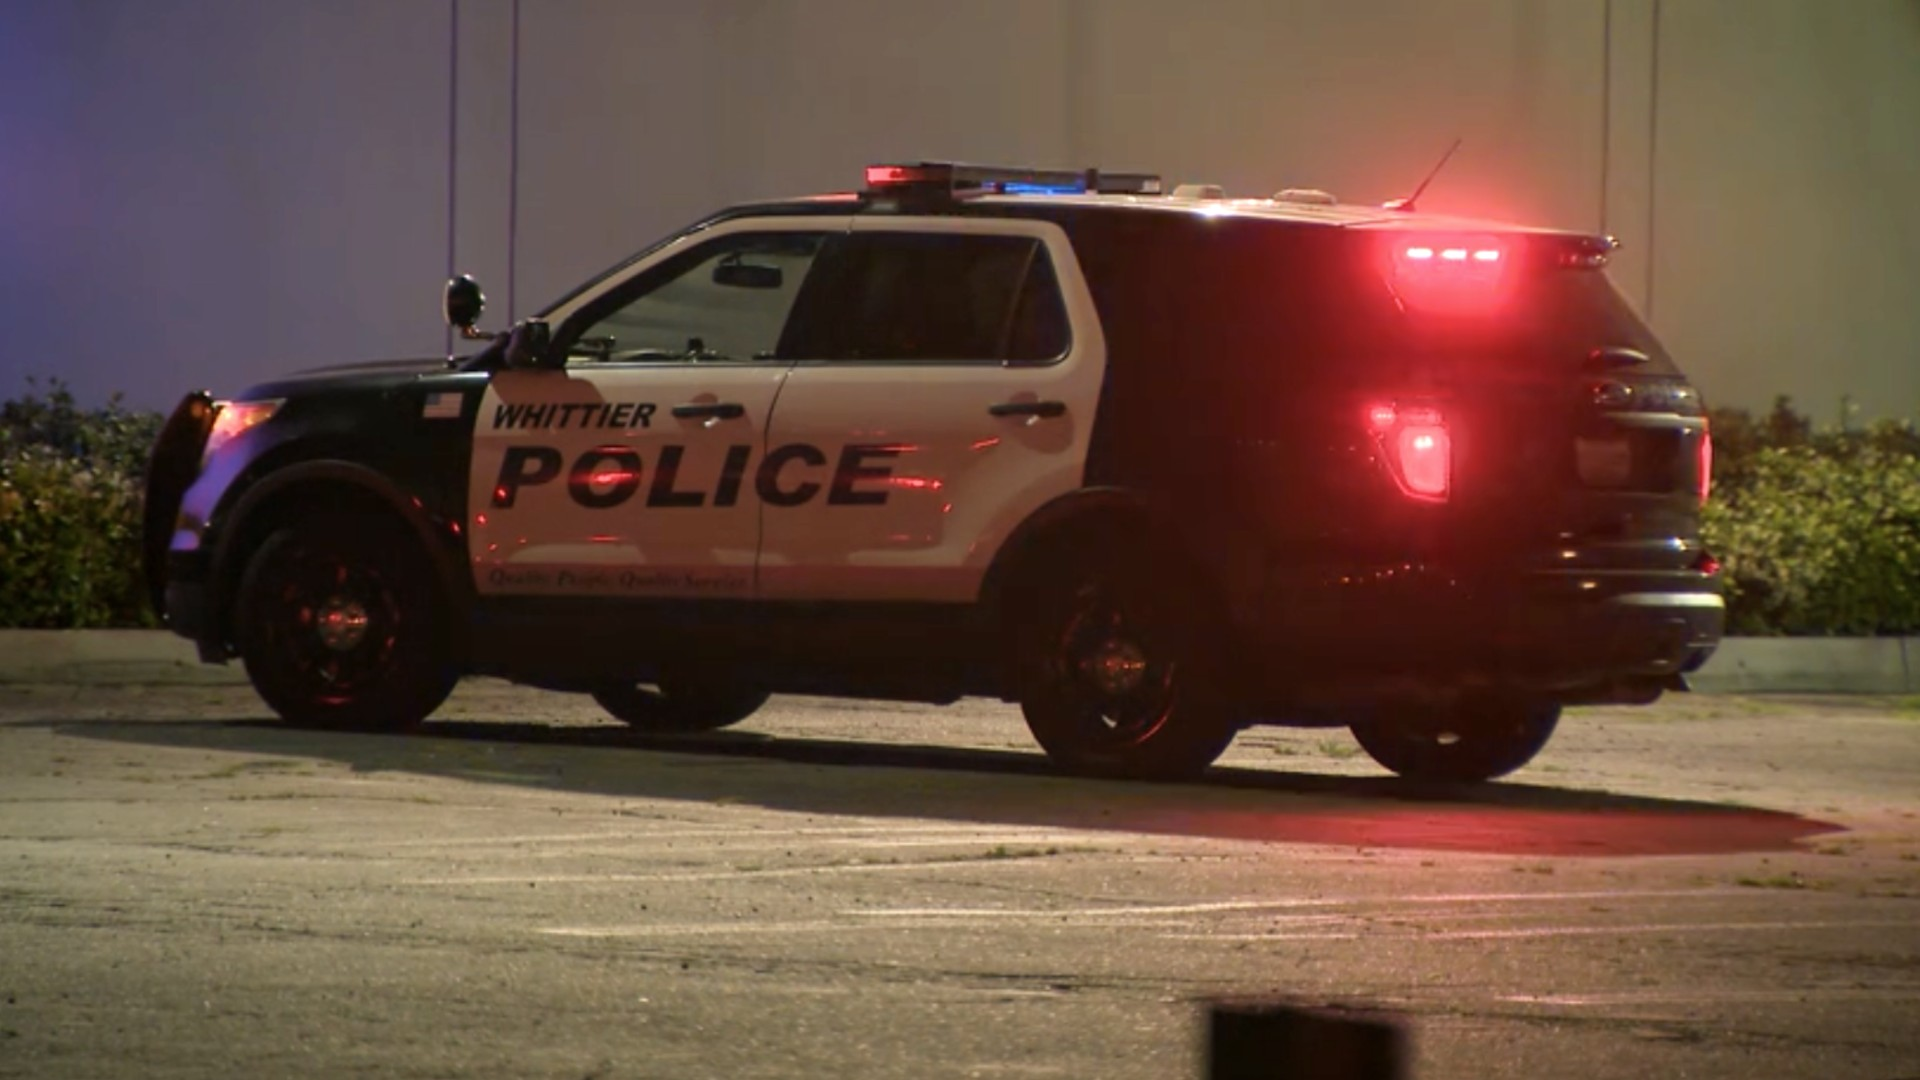 Police investigate a fatal shooting in Whittier on May 20, 2021. (KTLA)